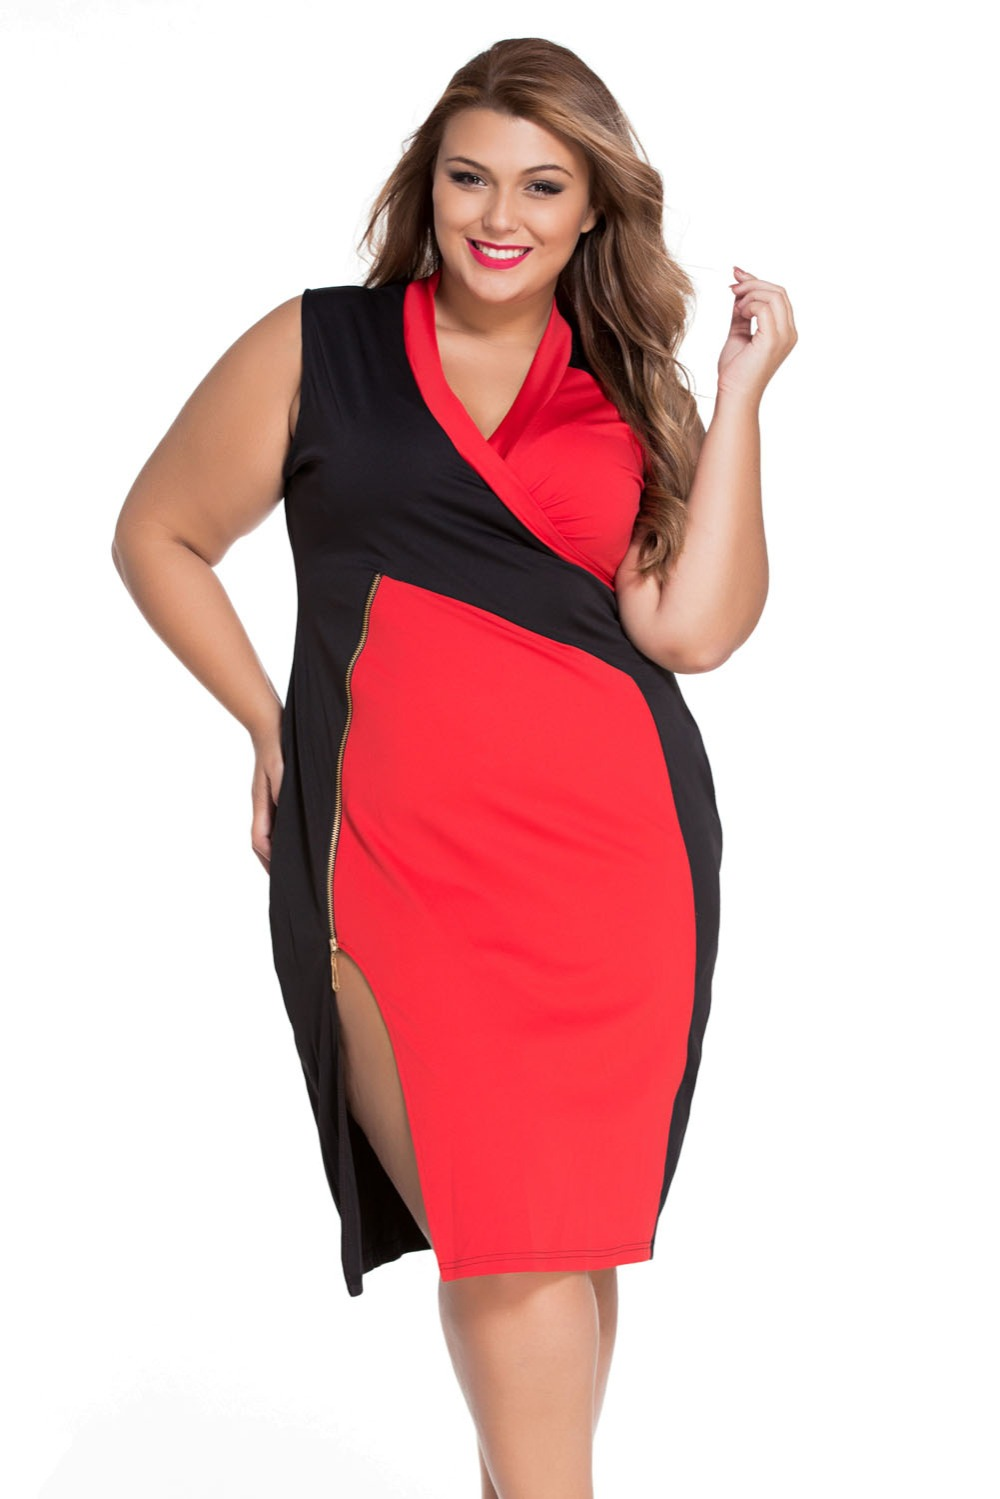 Shop plus size clothing at Evans, sizes On-trend plus size fashion to flatter your shape. Shop in store, online, by mobile or call